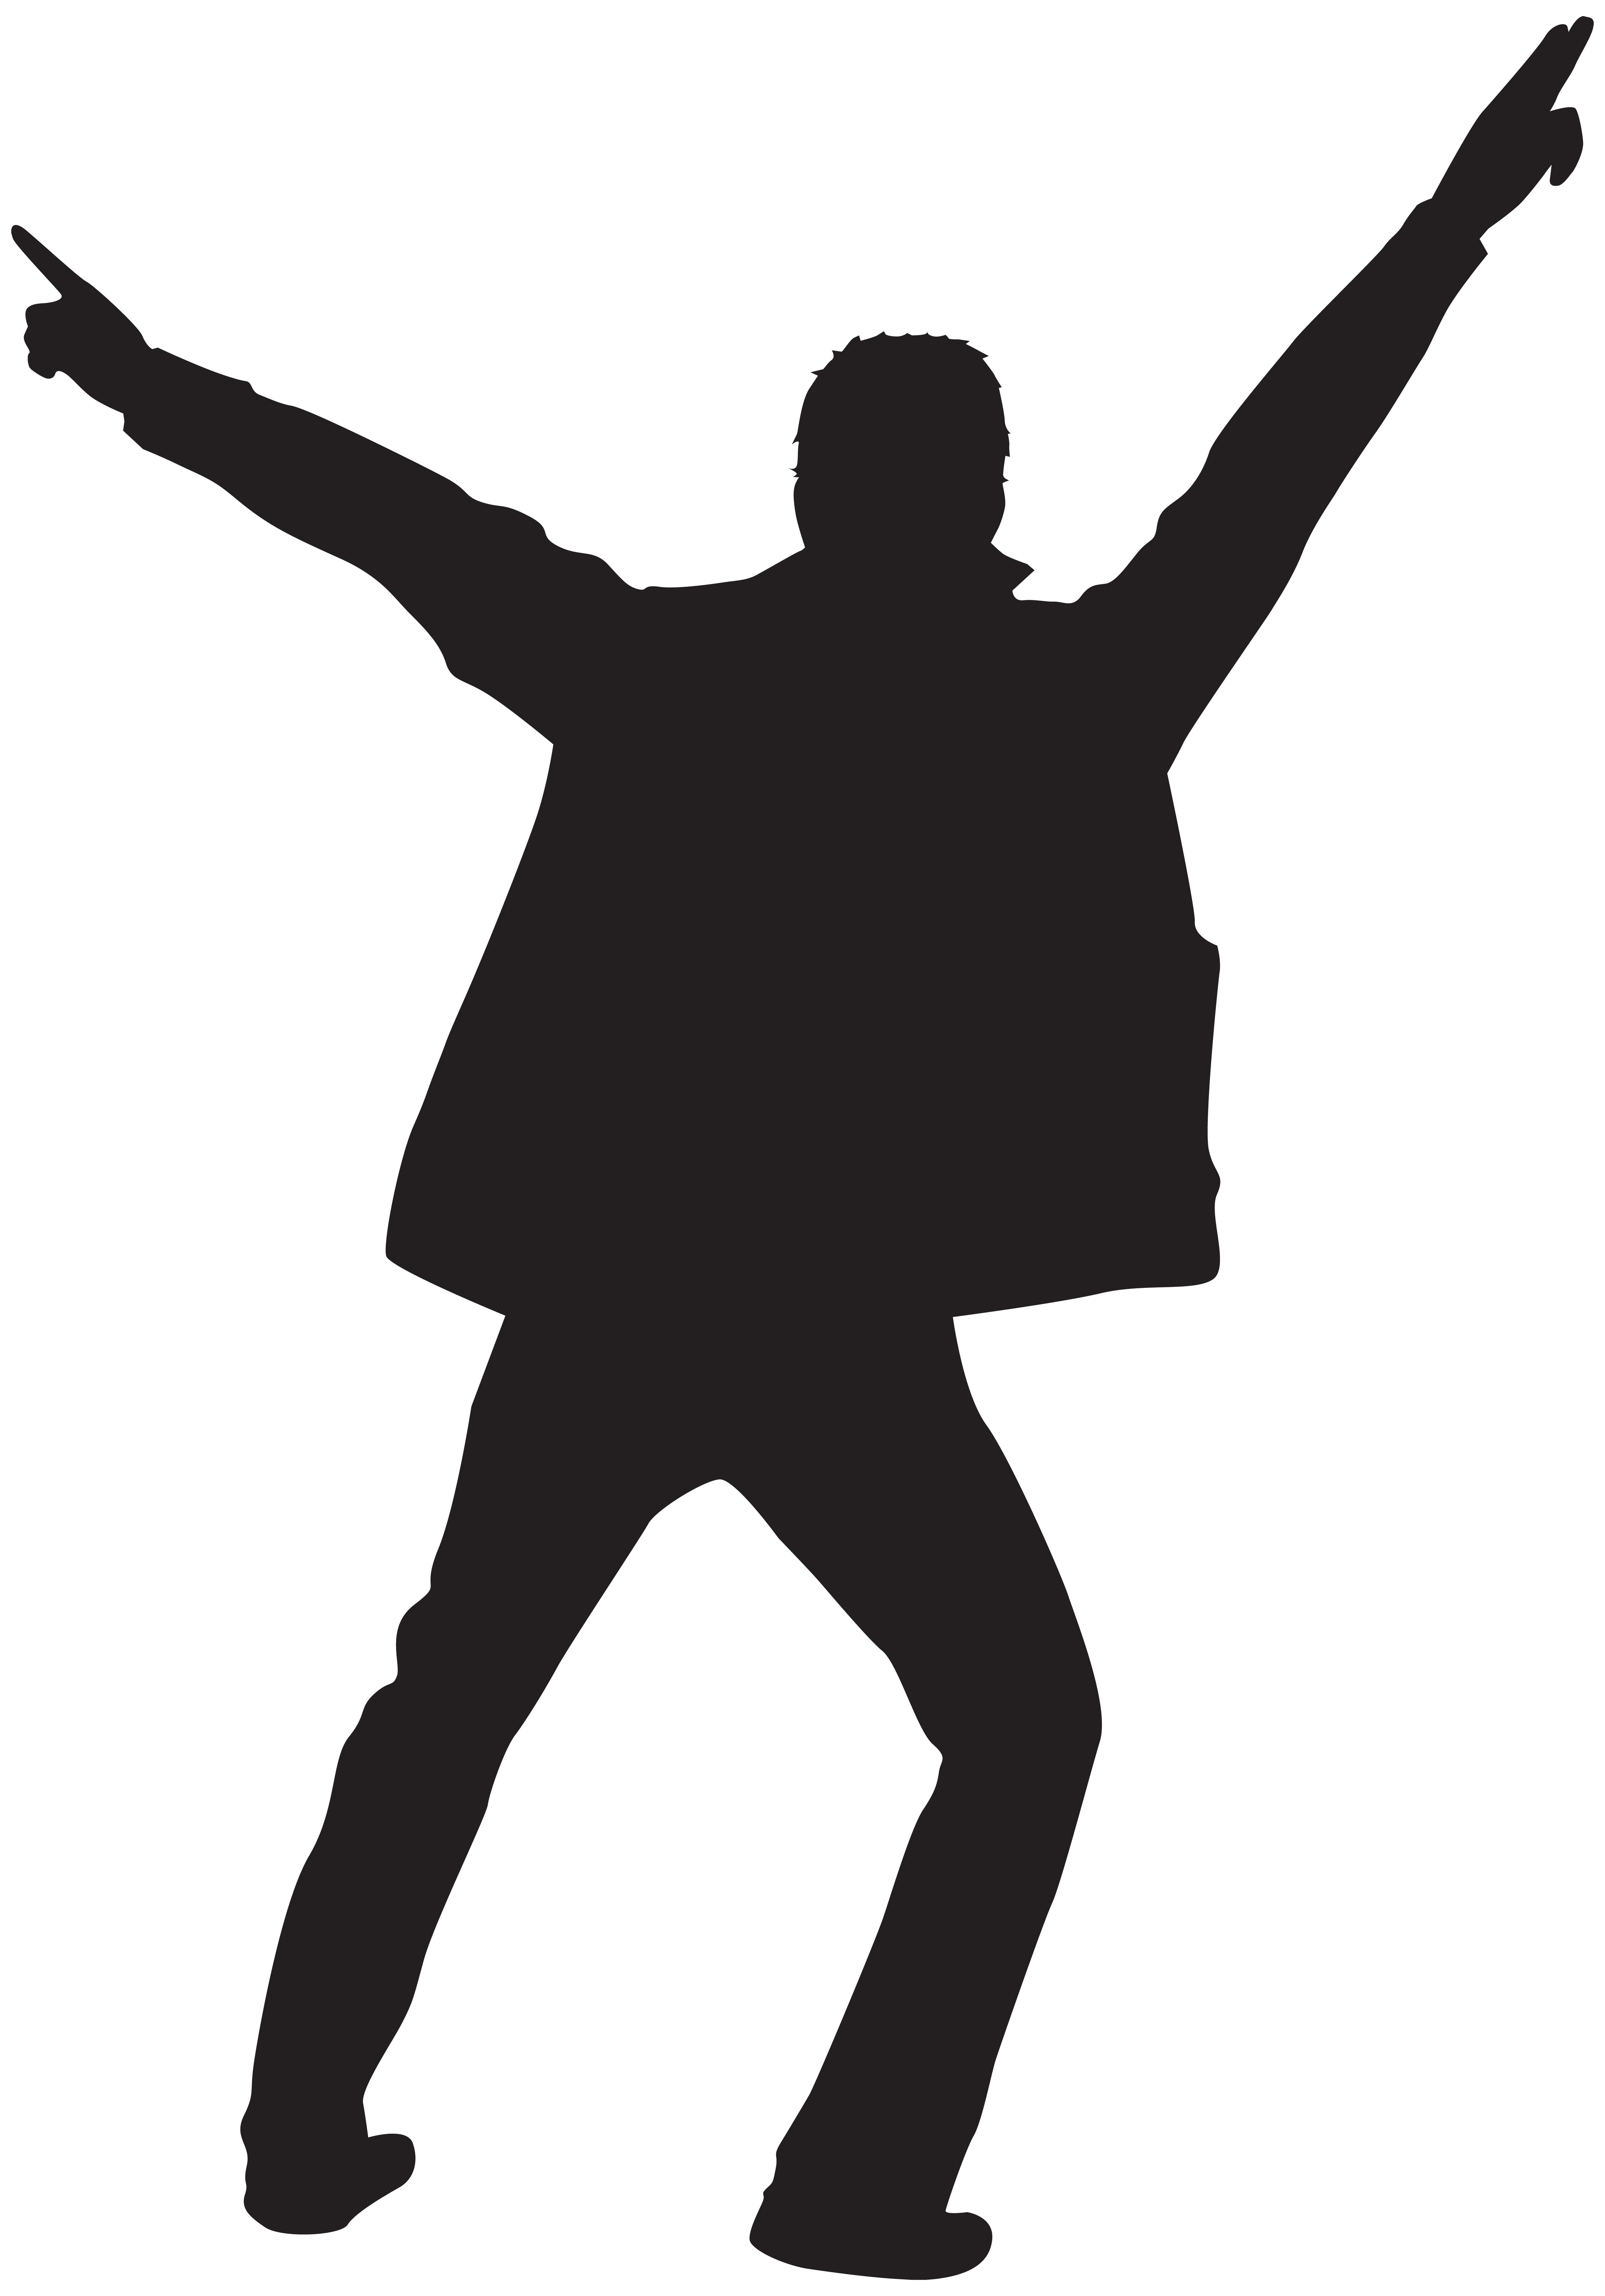 Man silhouette clip art. Dancing clipart png banner black and white download